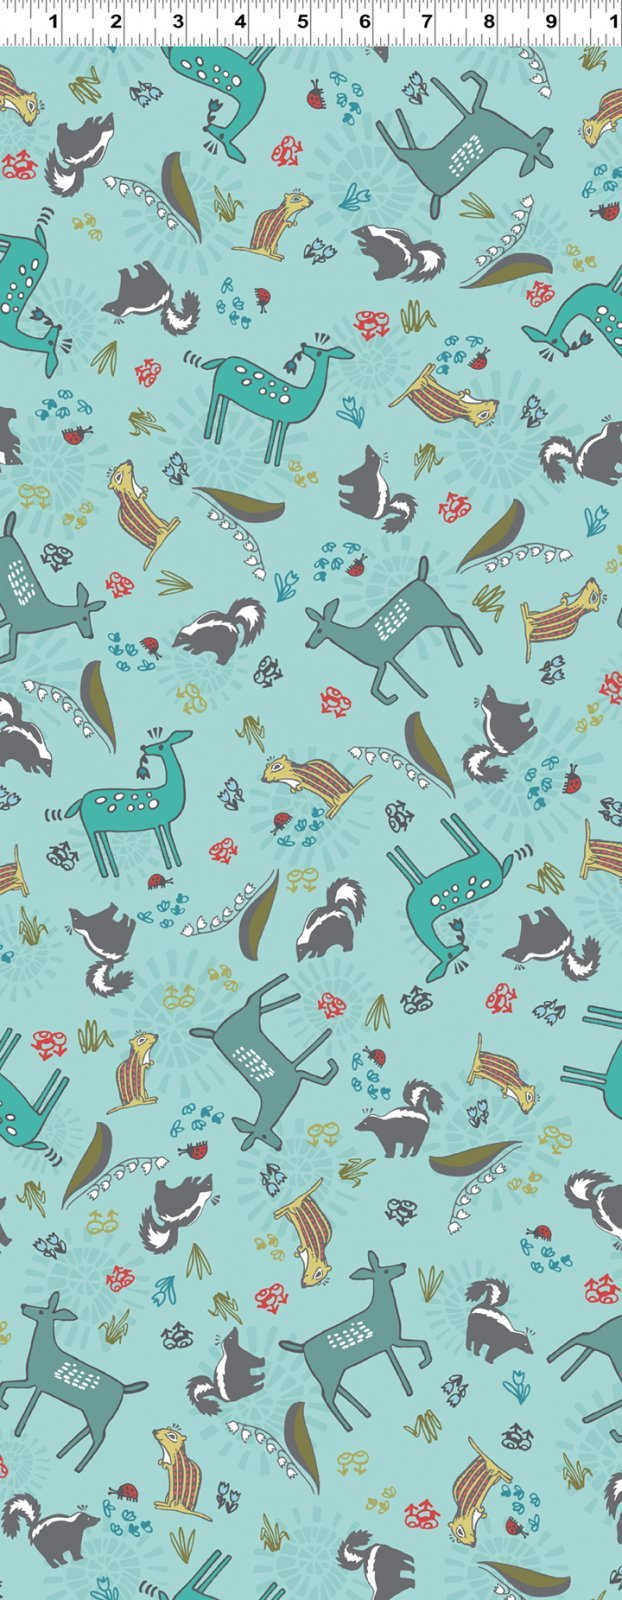 2018 Quilt MN - Y2449 FLANNEL FAUNA - 103 LIGHT TEAL